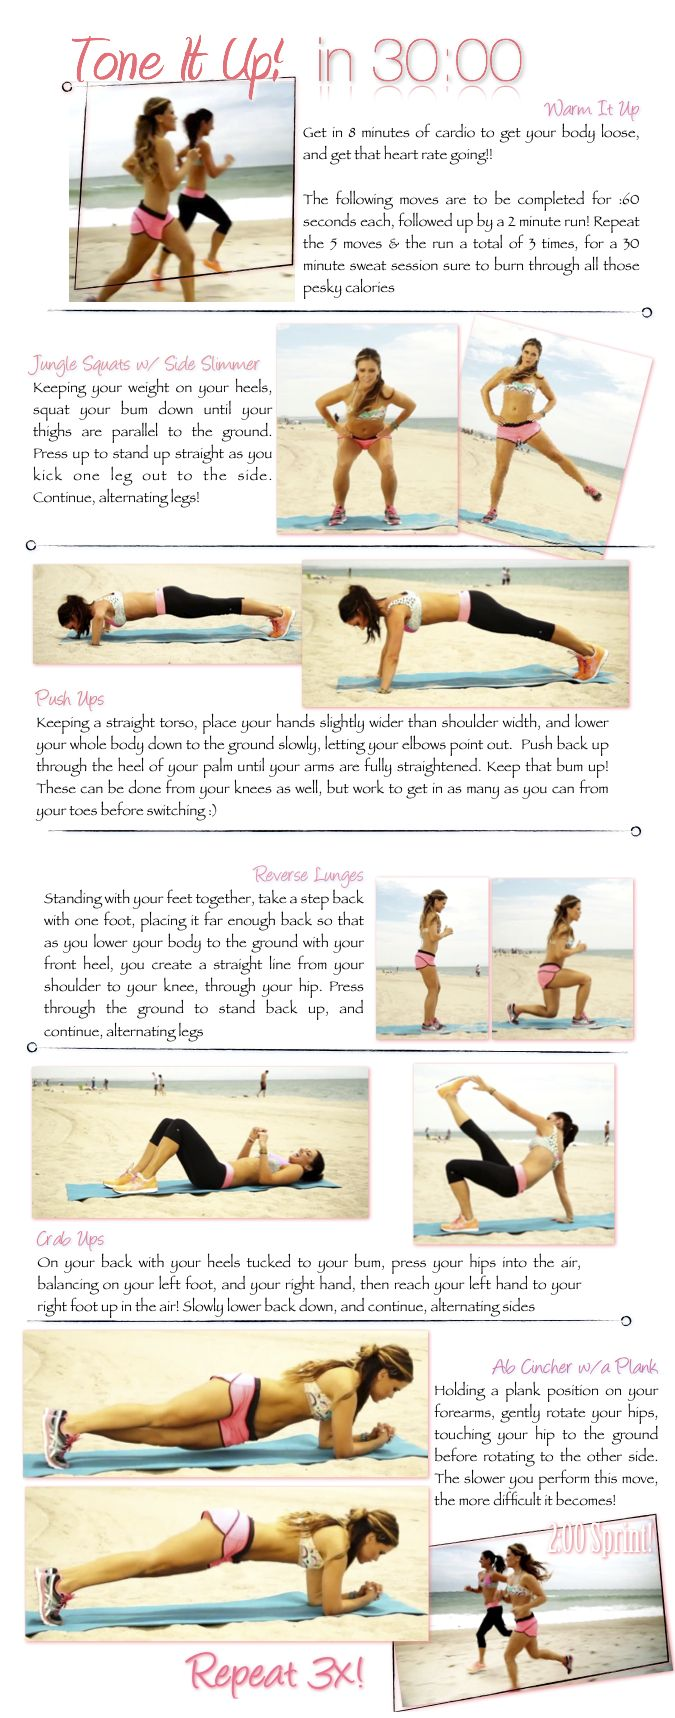 Tone It Up! In 30 Minutes